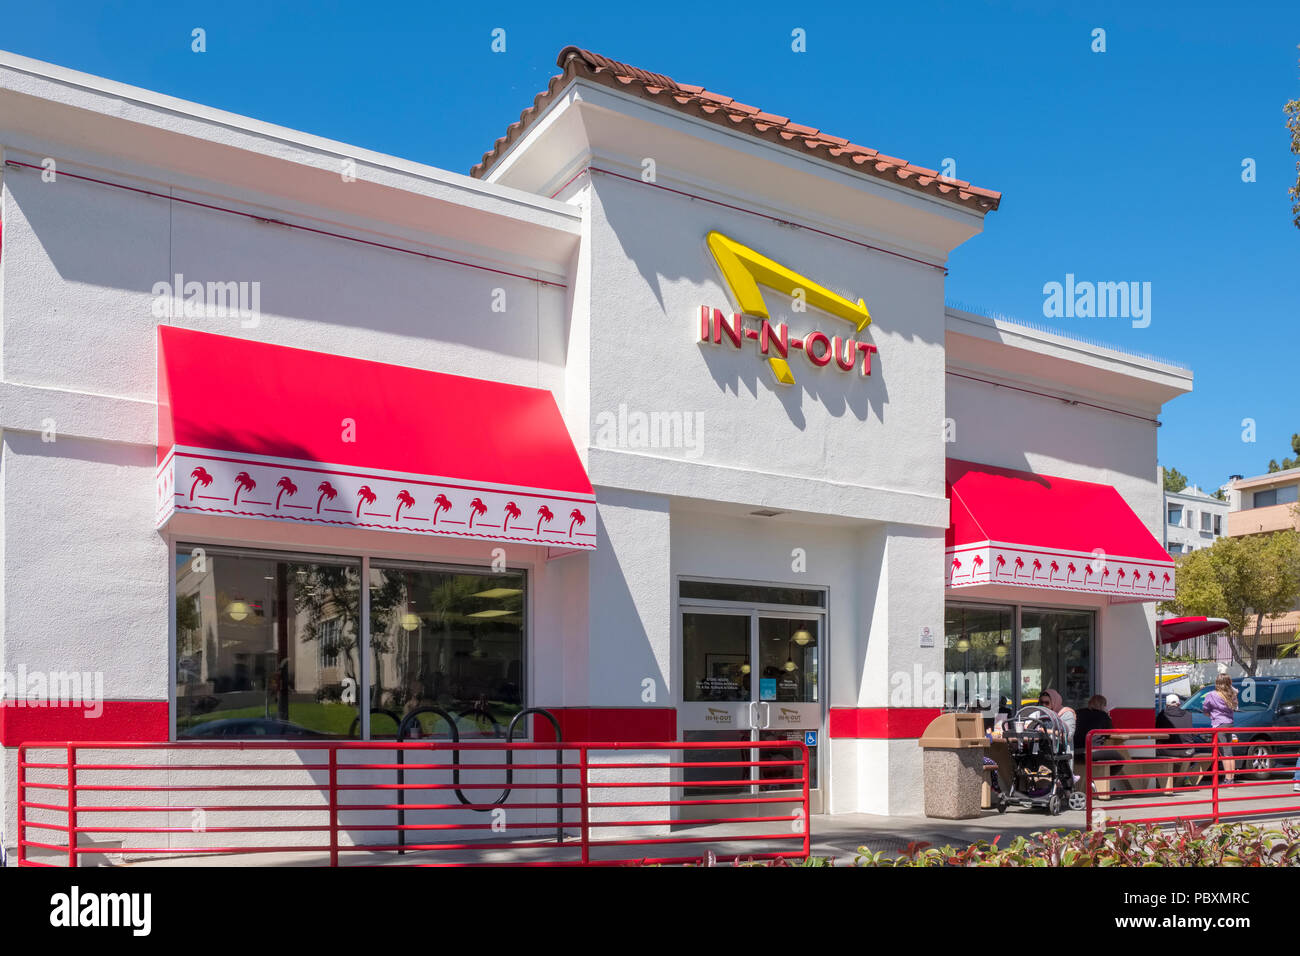 a8b8d4c69810c In N Out Burger fast food restaurant building exterior